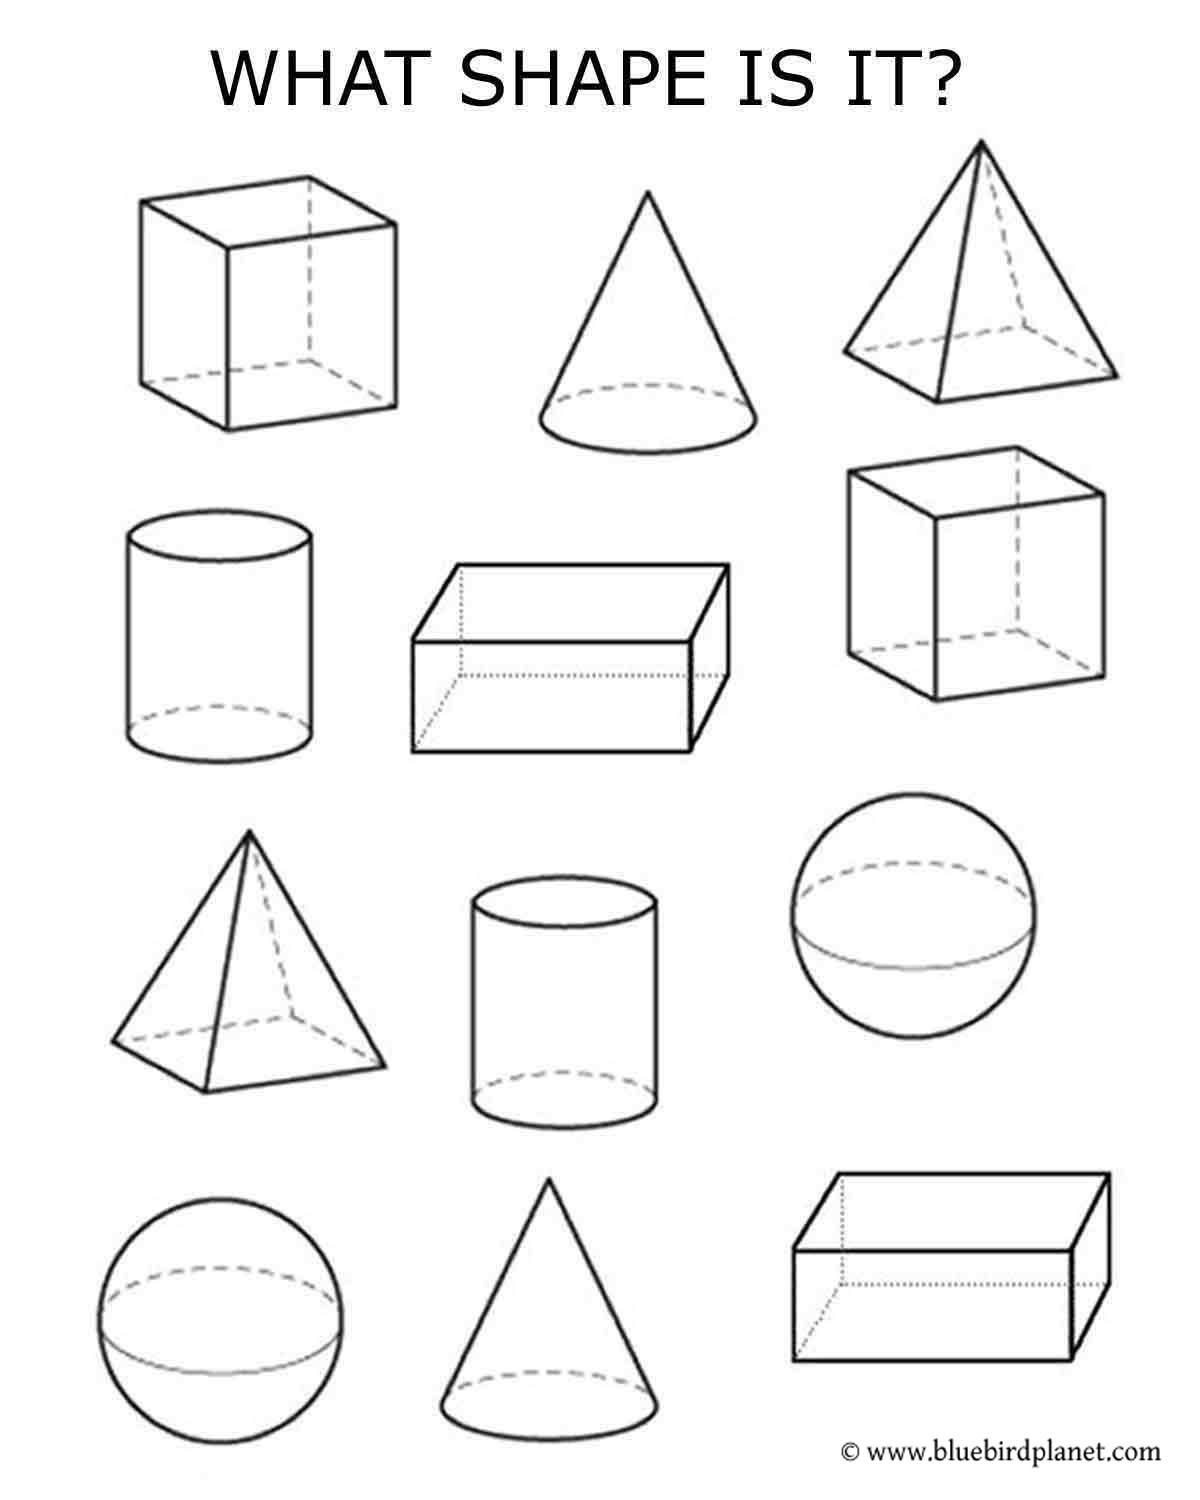 3rd Grade Geometry Worksheets Pdf Free Printable Worksheets for Preschool Kindergarten 1st